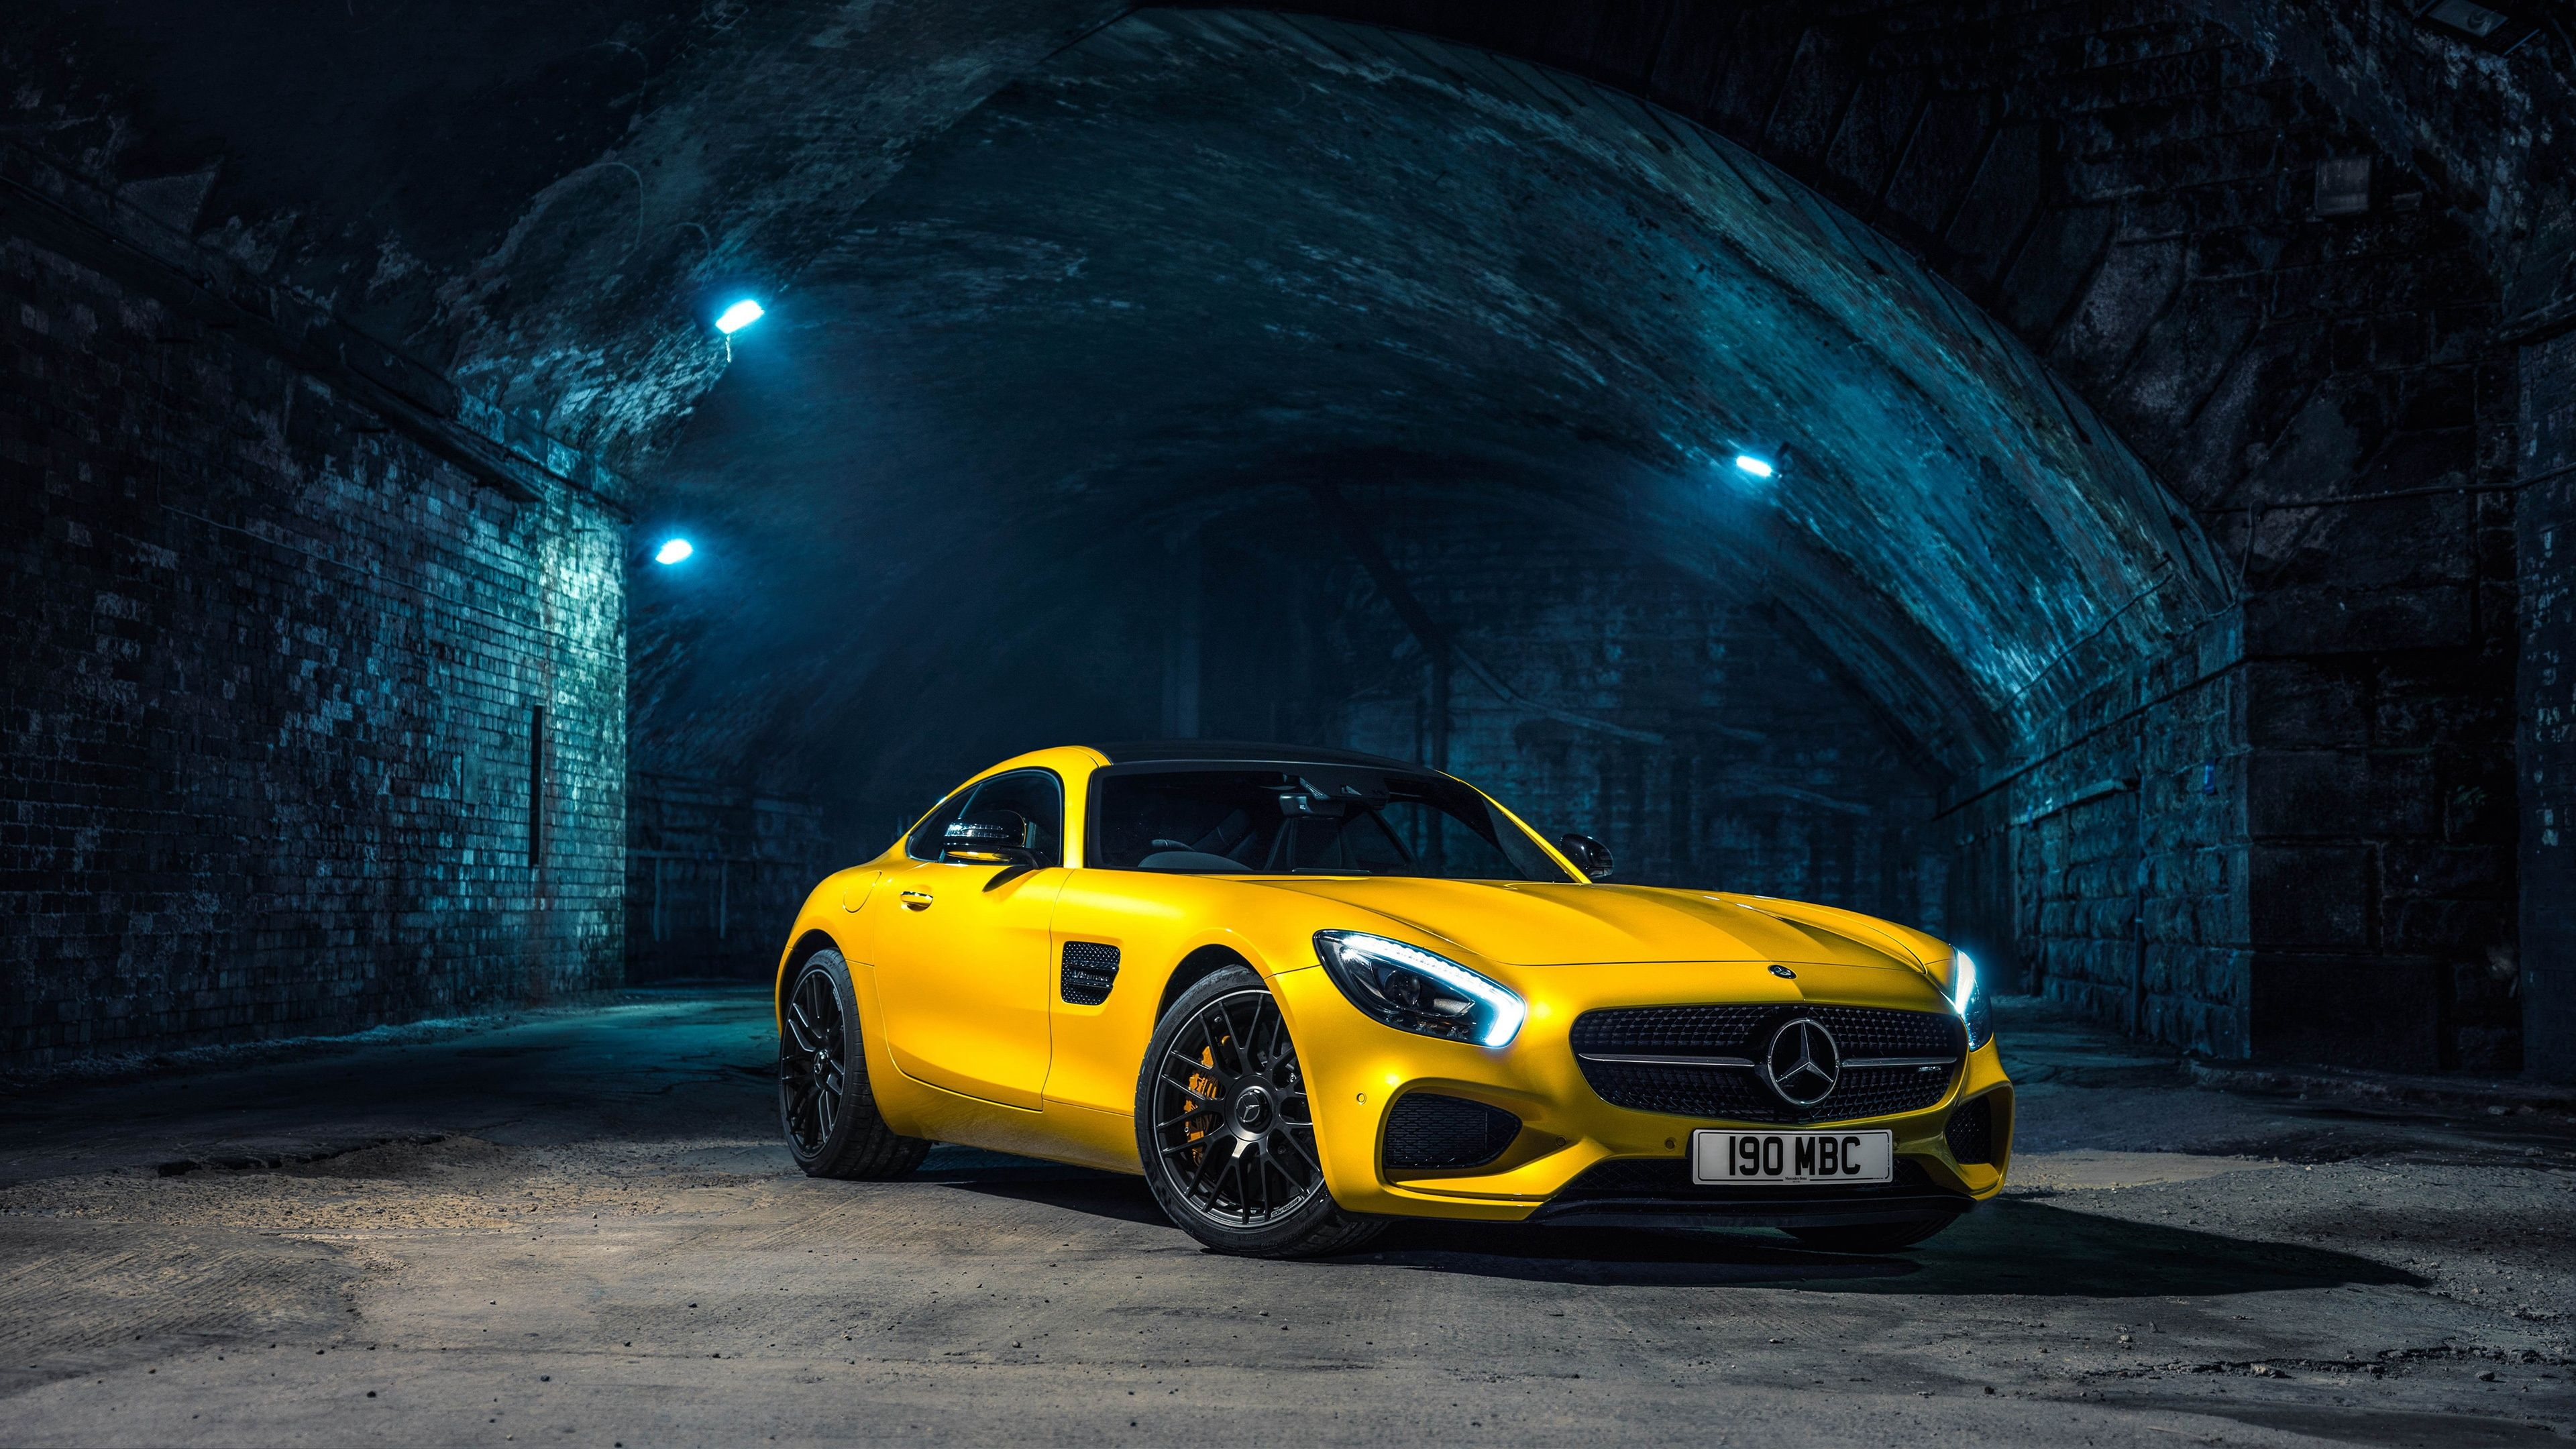 Mercedes Amg Gt Wallpapers Wallpaper Cave